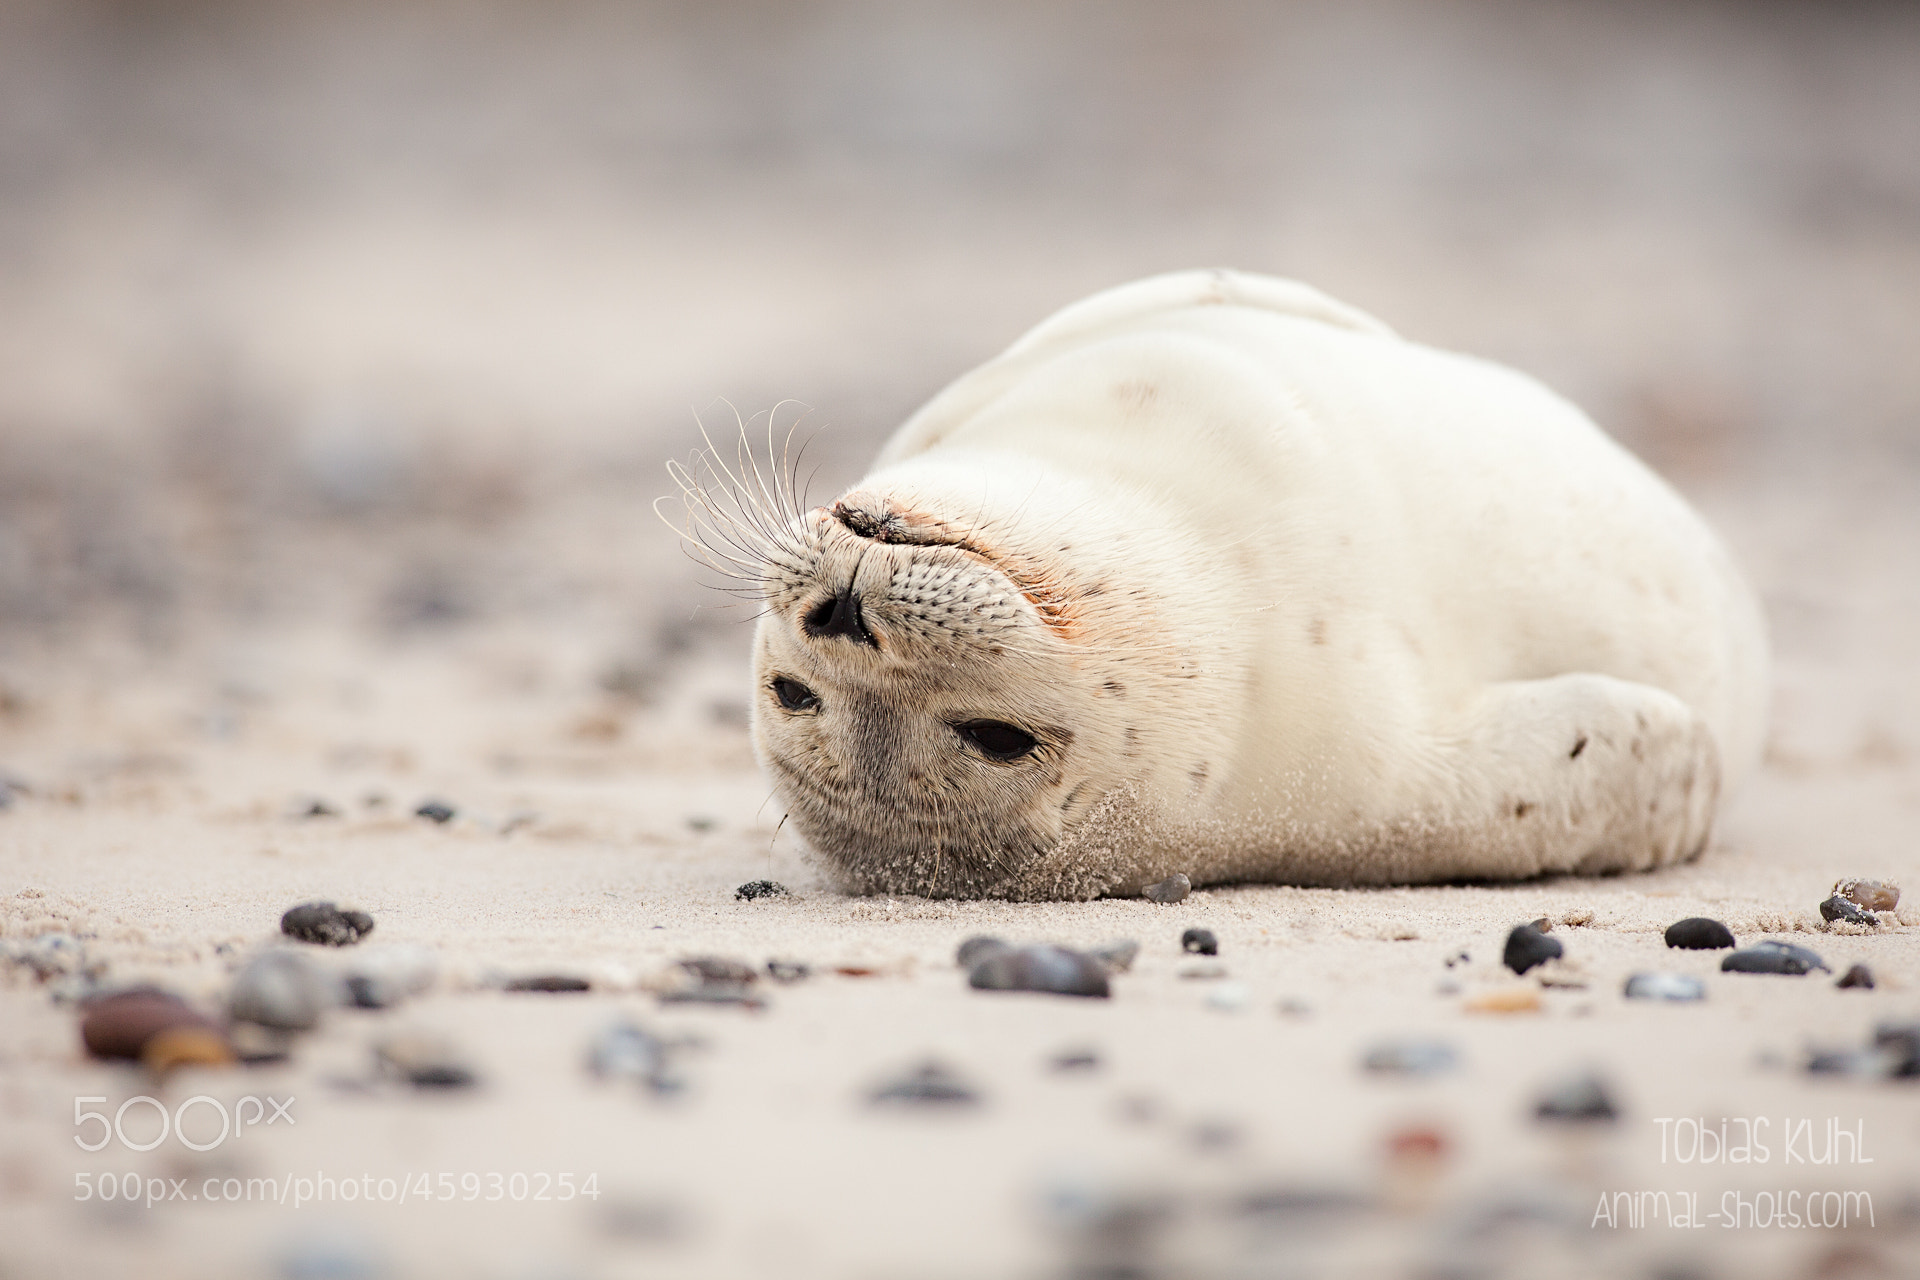 Photograph Relaxing Happily by Tobias Kuhl on 500px